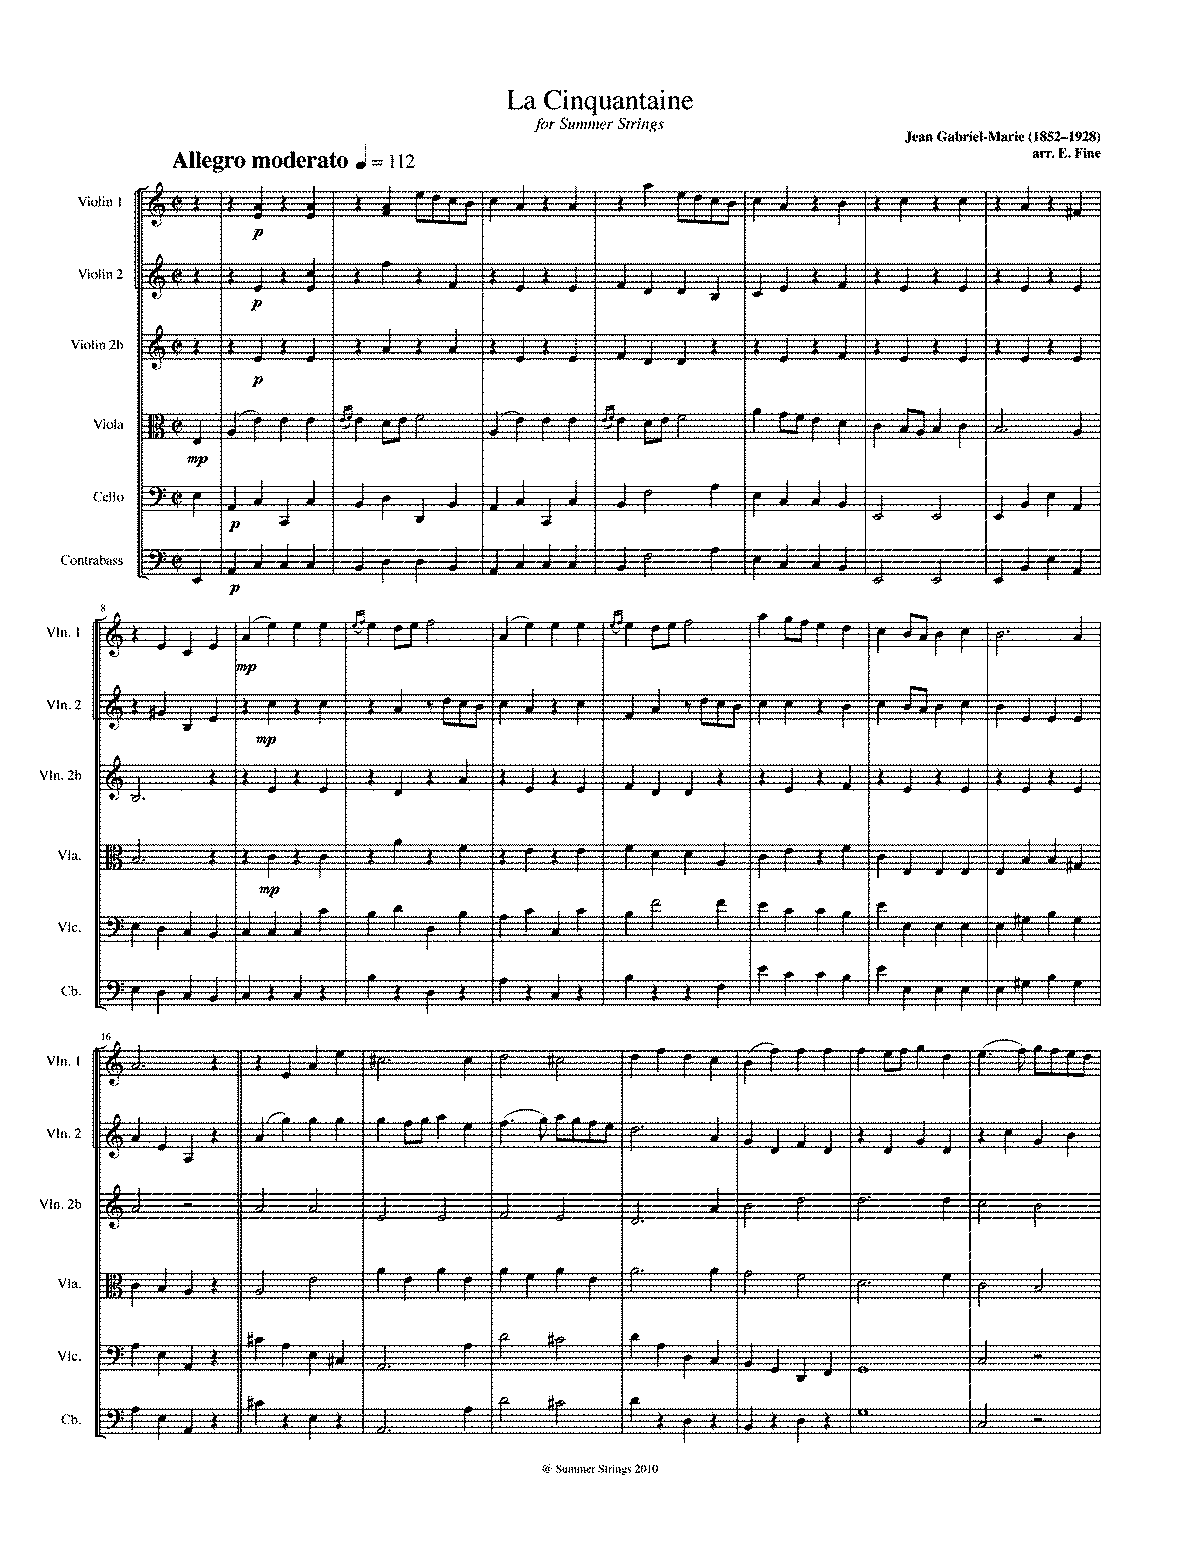 WIMA.b7f1-Gabriel-Marie La Cinquantaine for Strings.pdf